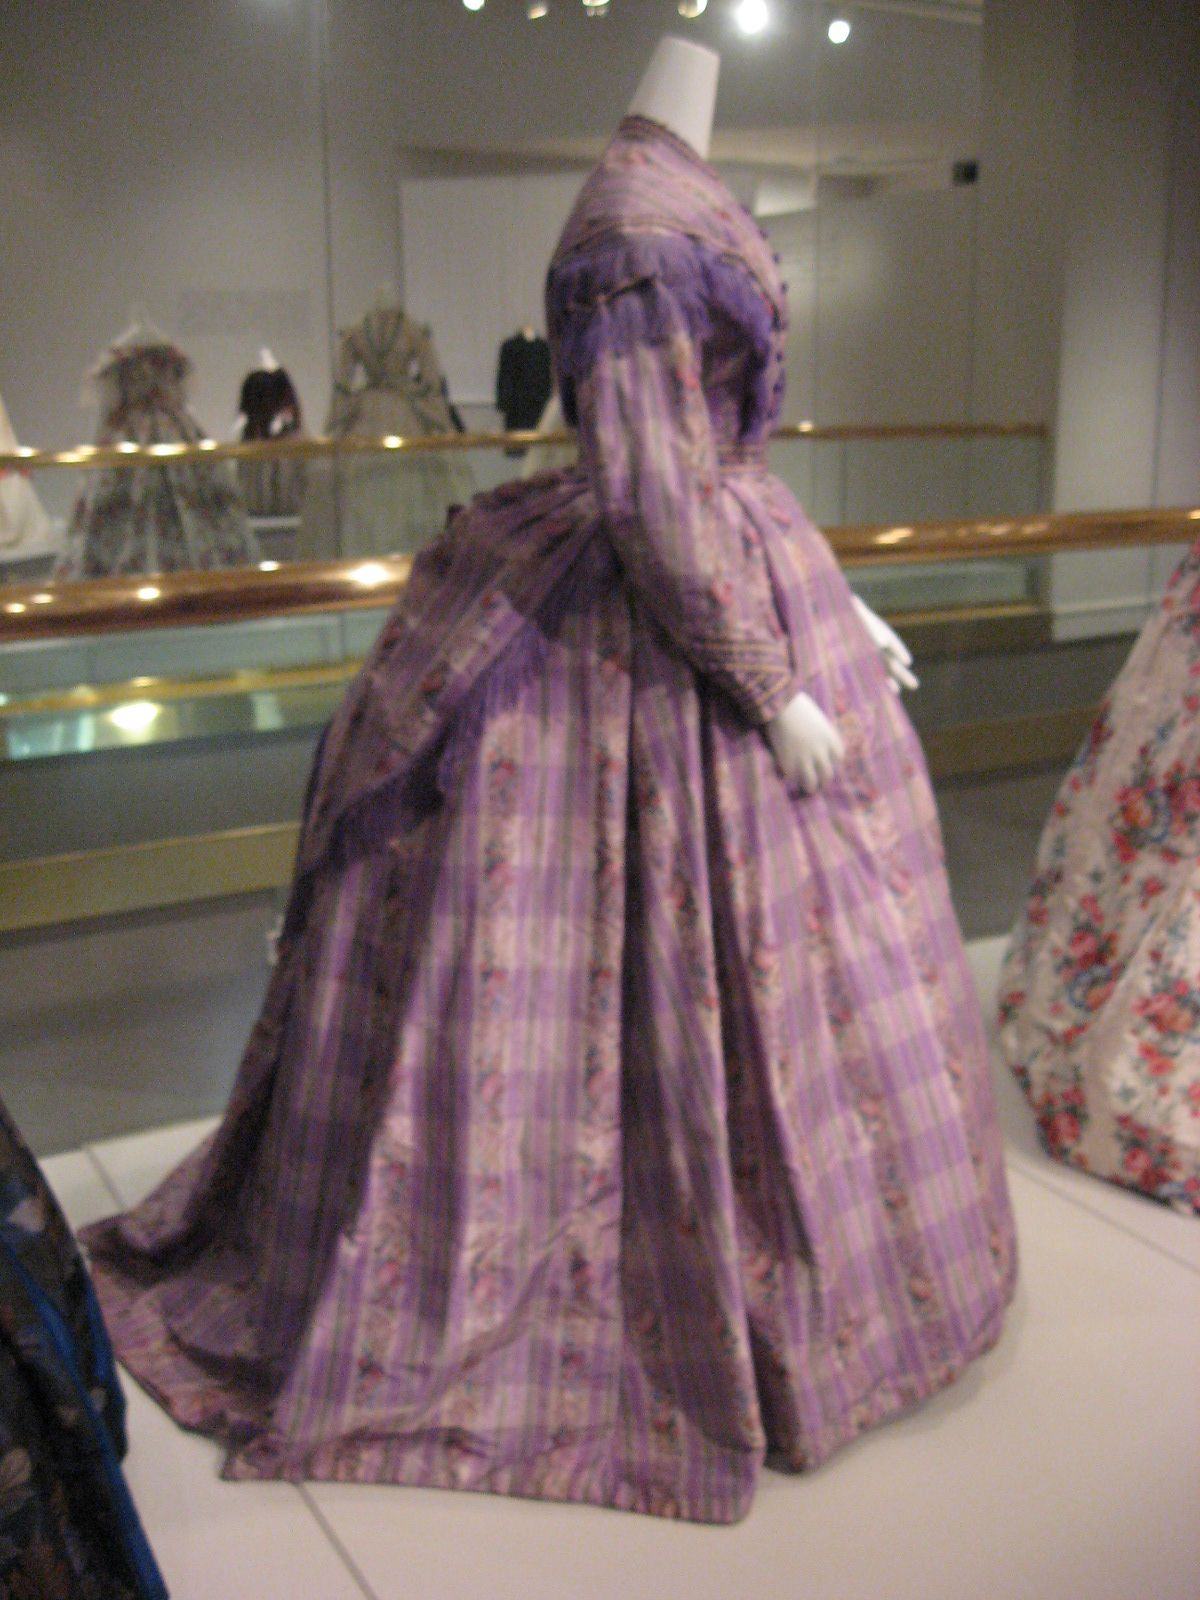 Elizabeth Keckley Dresses | Lavender taffeta day dress with warp printed flowers ...